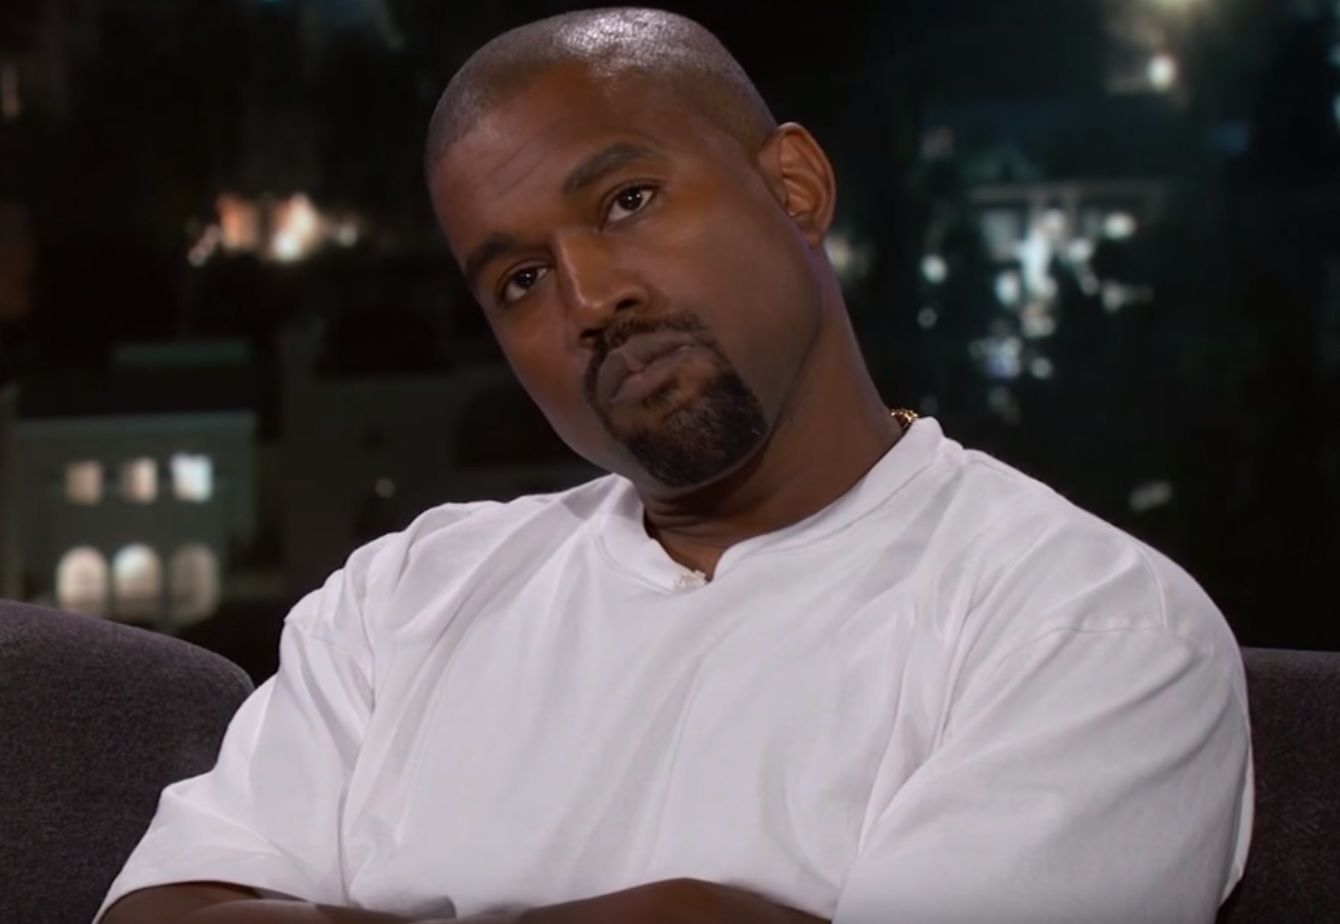 Video: Kanye West's Awkward Pause When Jimmy Kimmel Asks ...